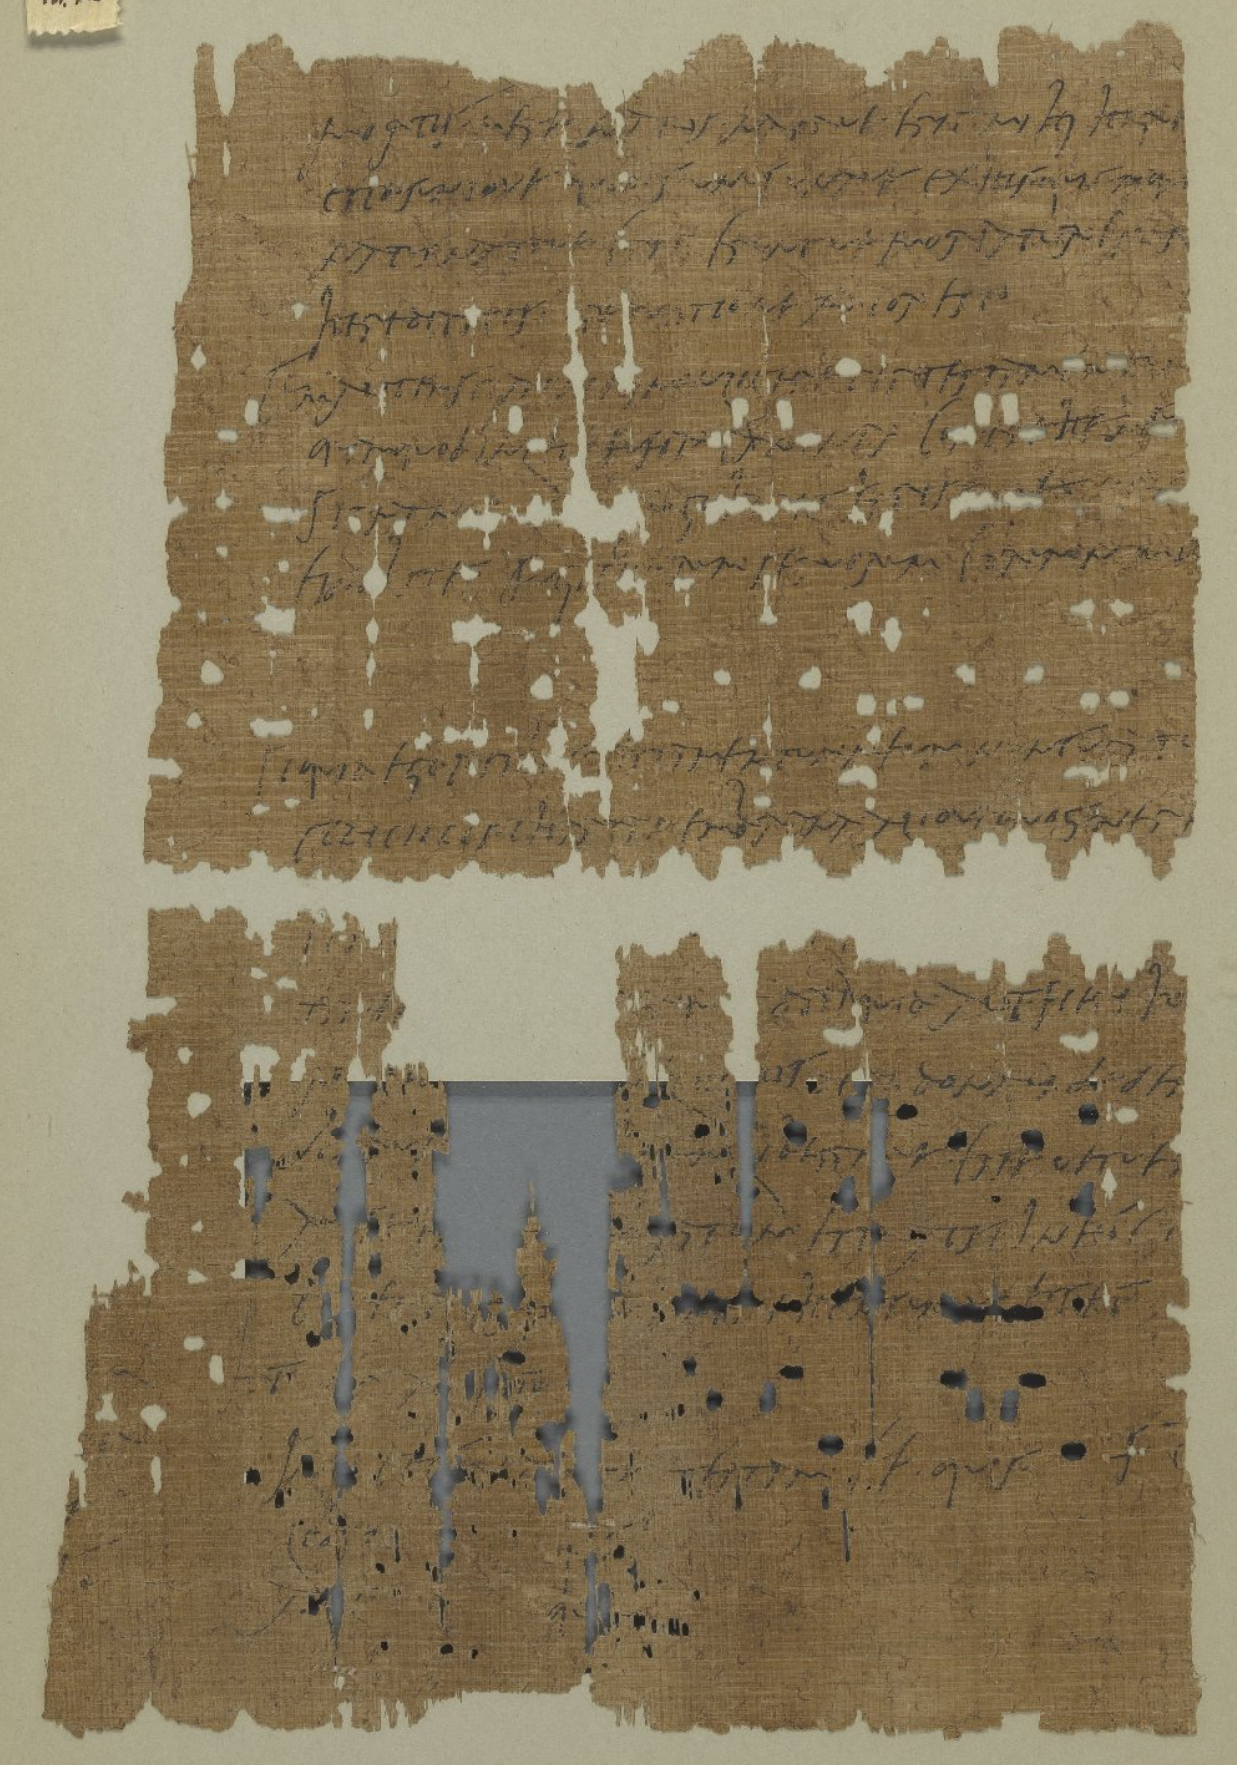 Tattered fragments of a sheet of papyrus with horizontal lines of handwritten text in dark but partially faded ink